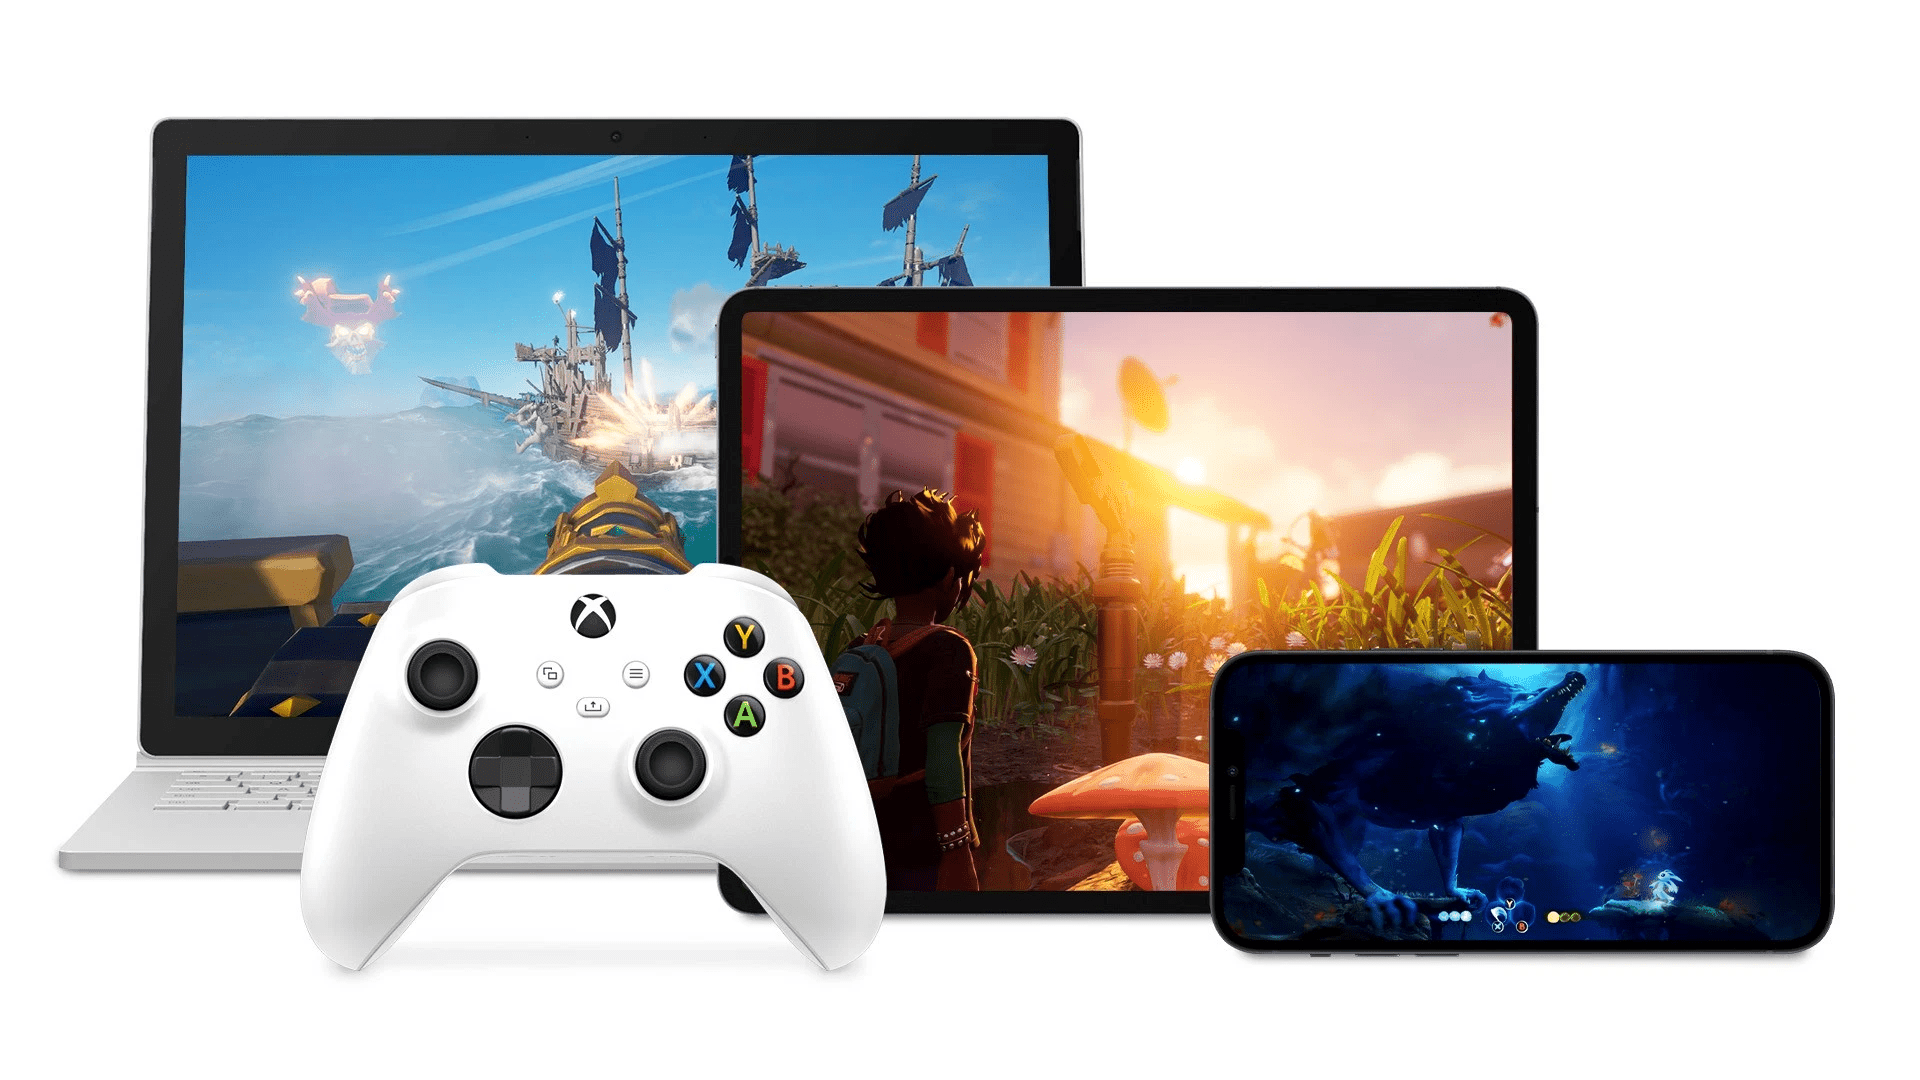 Xbox controller with computer, tablet, and phone screens